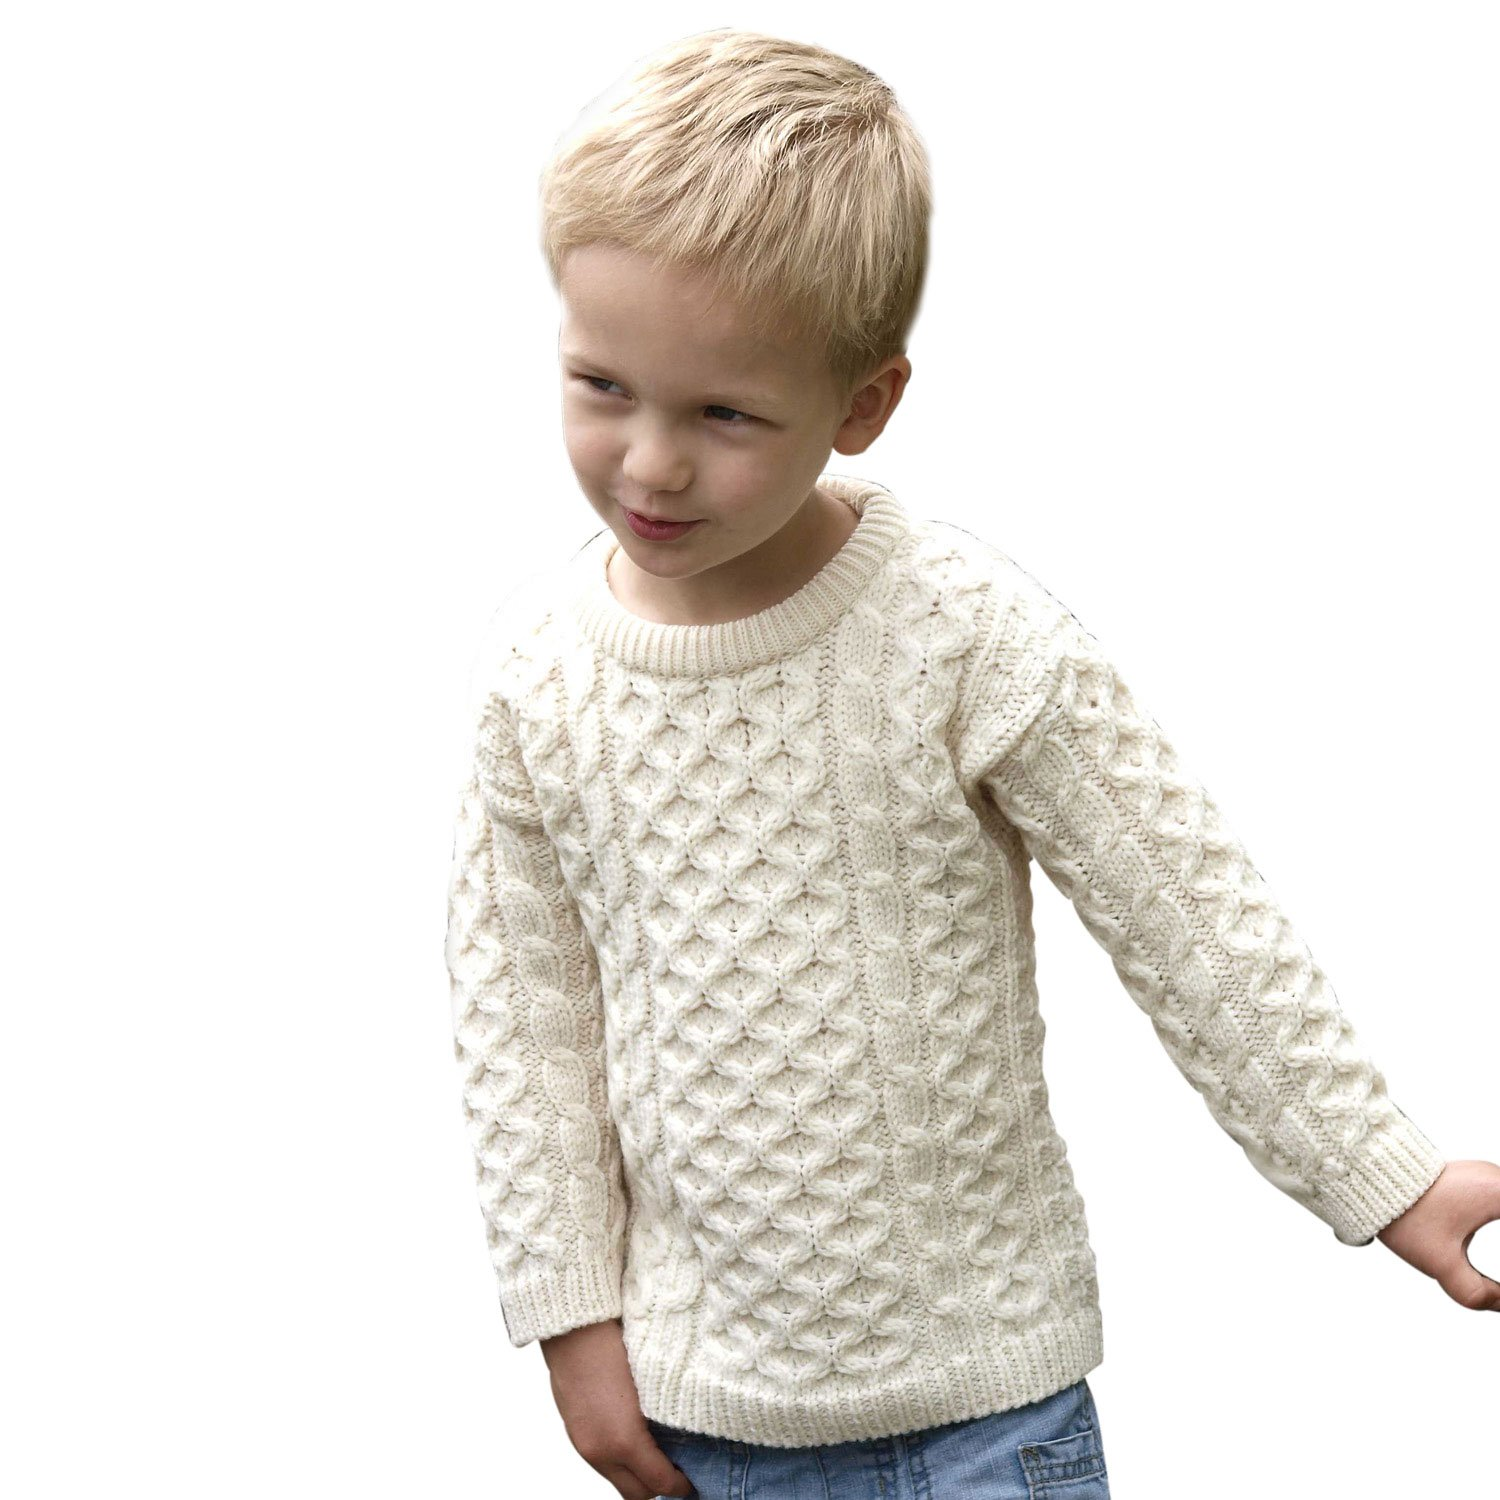 100% Extra Soft Irish Merino Wool Natural Kids Crew Neck Sweater, 2-3 Yrs Aran Crafts